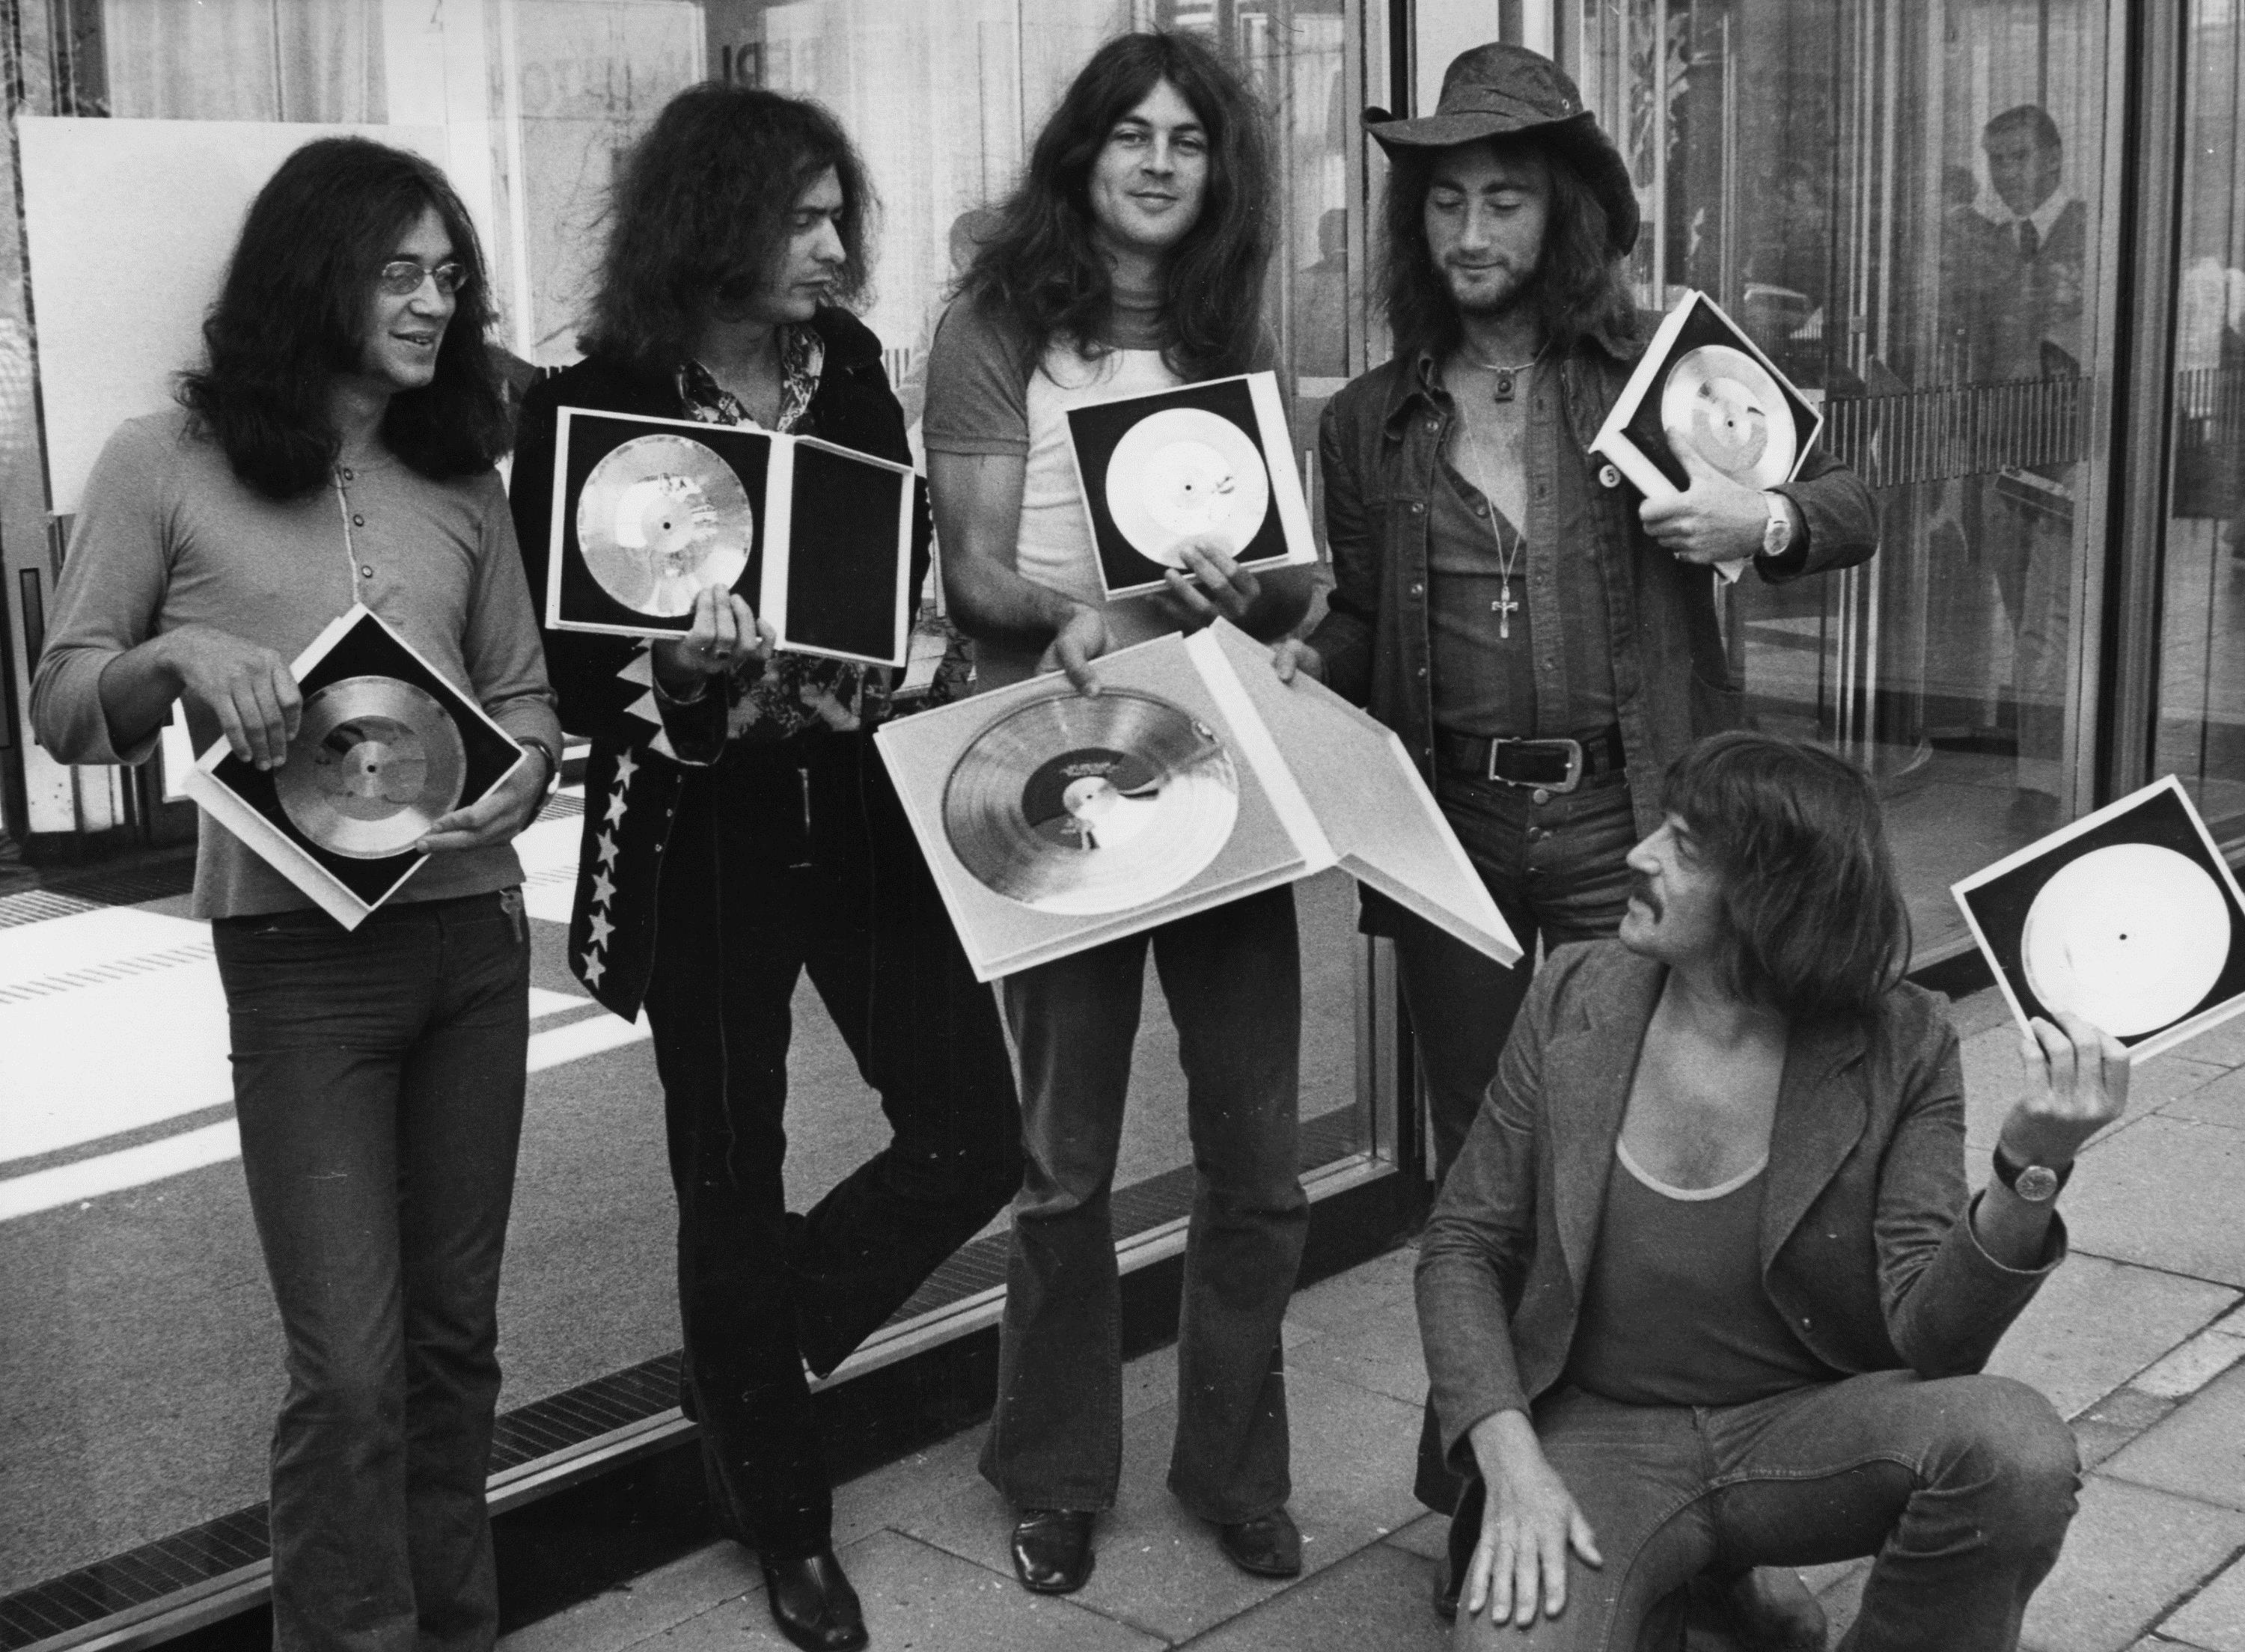 "In this Sept. 1, 1971, file photo, British rock band Deep Purple present their golden record they received in West Berlin for the sales of their latest album, ""Deep Purple in Rock,"" in West Germany. The groundbreaking Los Angeles rap act N.W.A. will join a quartet of 1970s era FM radio rockers, Chicago, Cheap Trick, Deep Purple and Steve Miller as 2016 inductees into the Rock and Roll Hall of Fame announced Thursday, Dec. 17, 2015. (AP Photo/Edwin Reichert, File)"